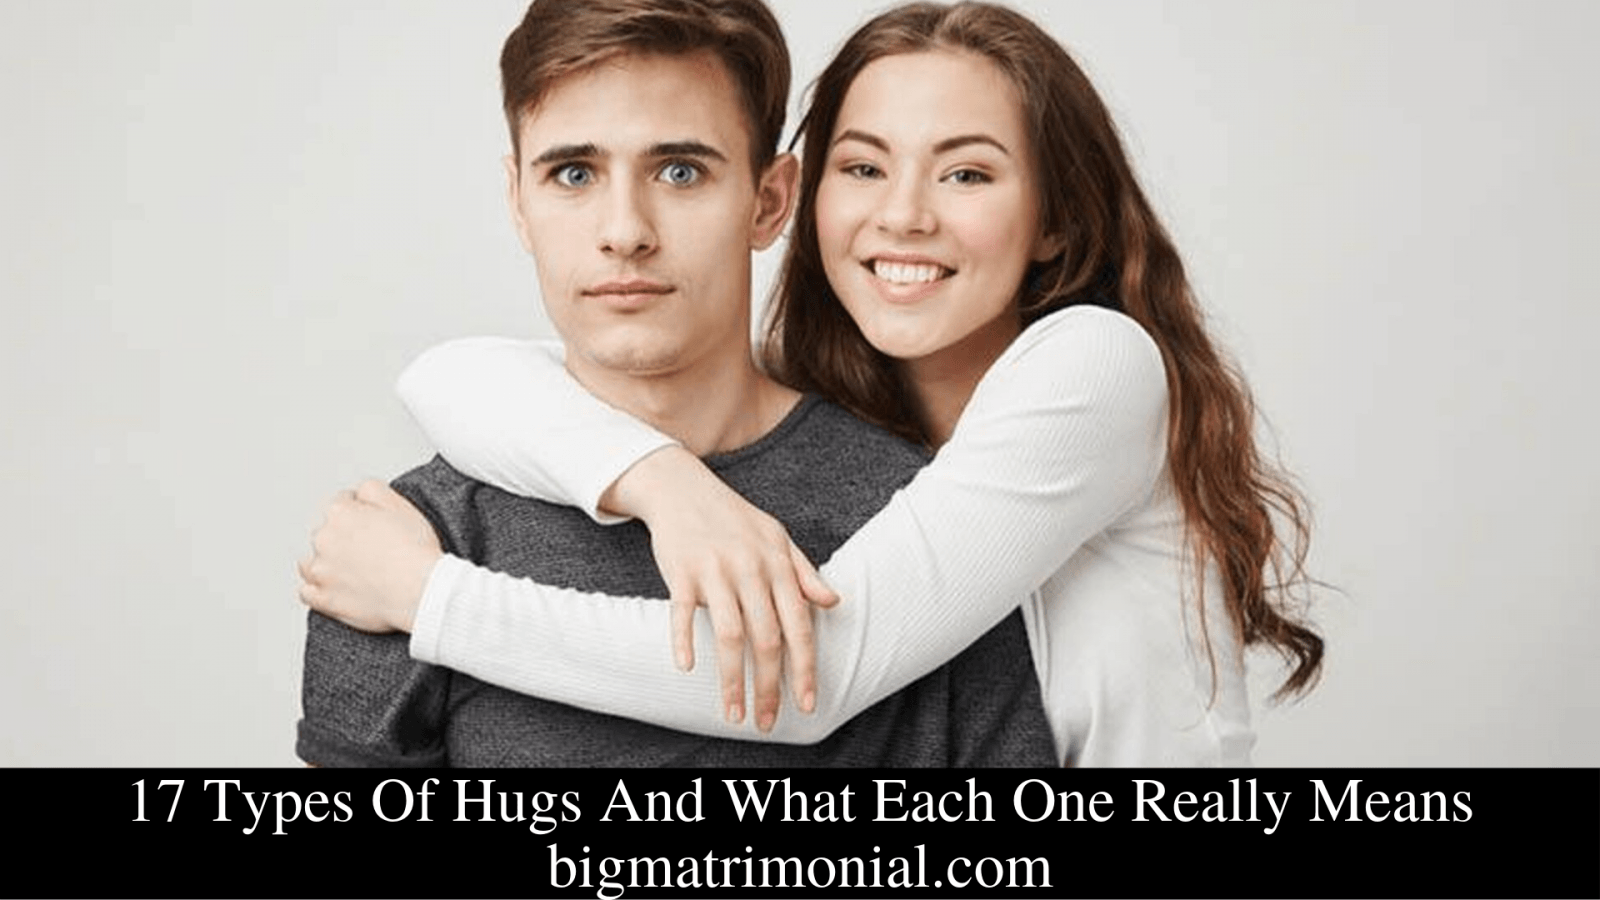 17 Types Of Hugs And What Each One Really Means